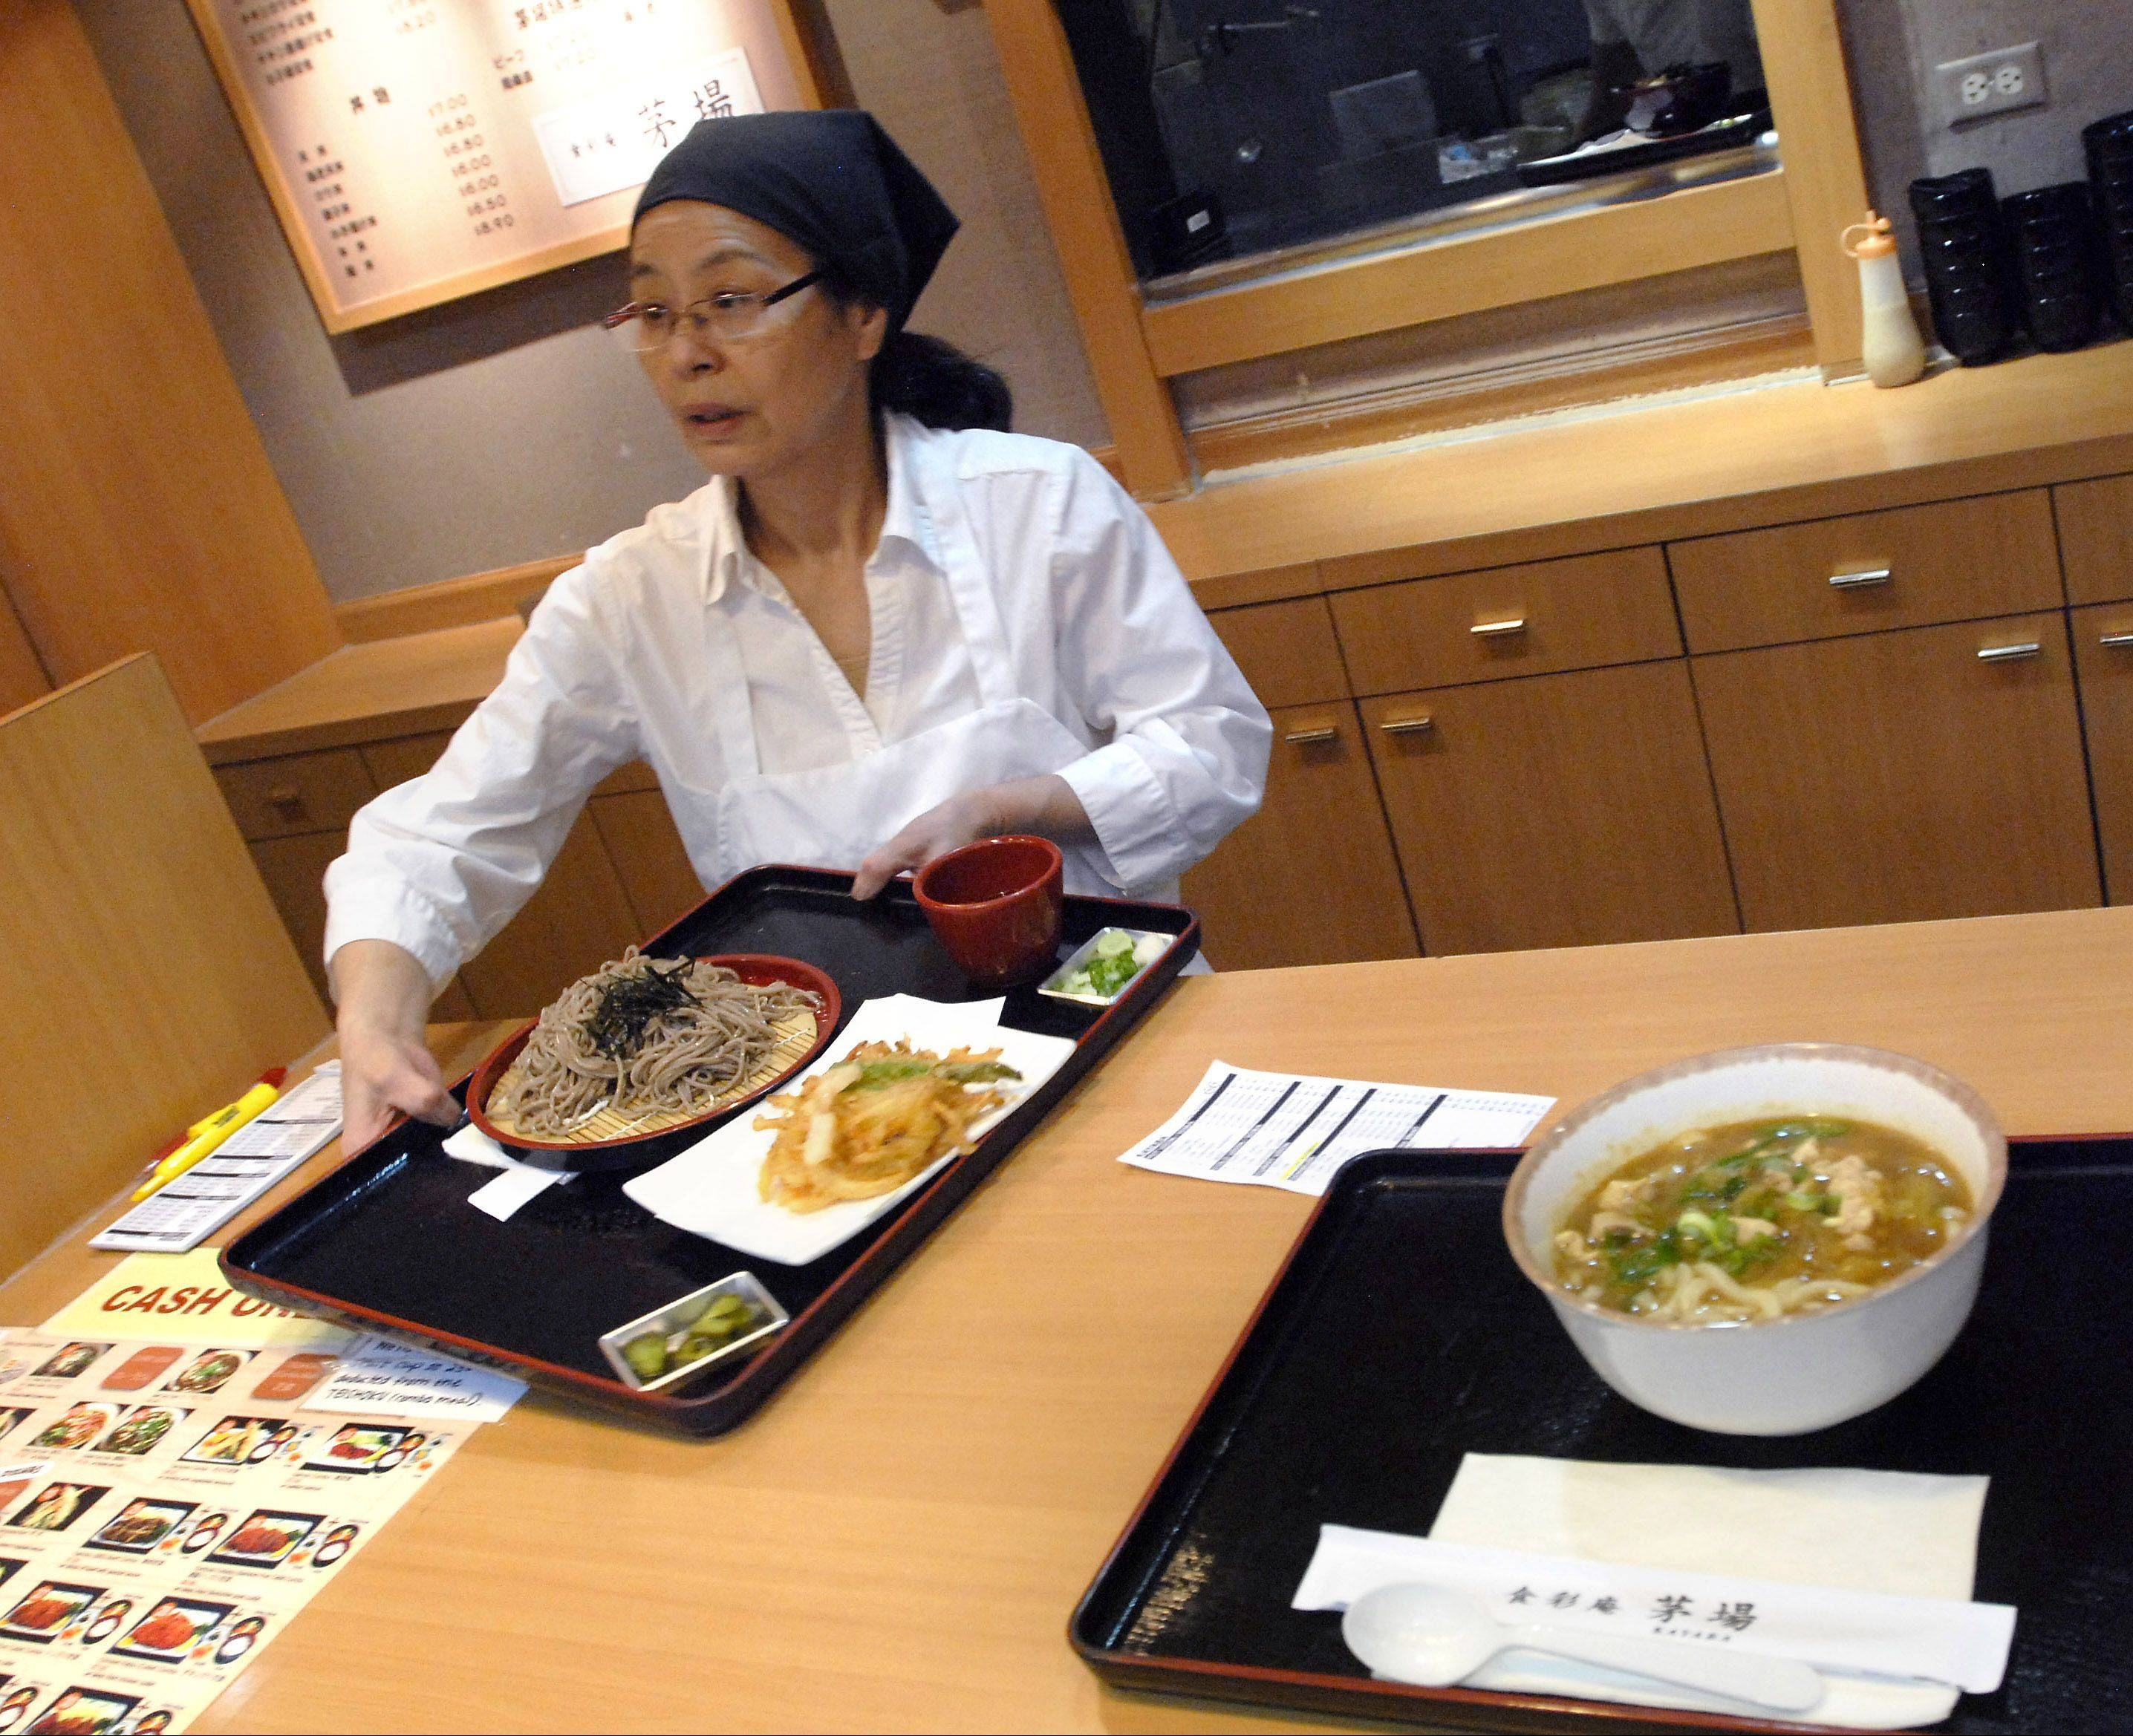 Kinuko Nishikata of Mount Prospect serves up noodles, tempura and soups at Kayaba restaurant in the food court at Mitsuwa Marketplace.